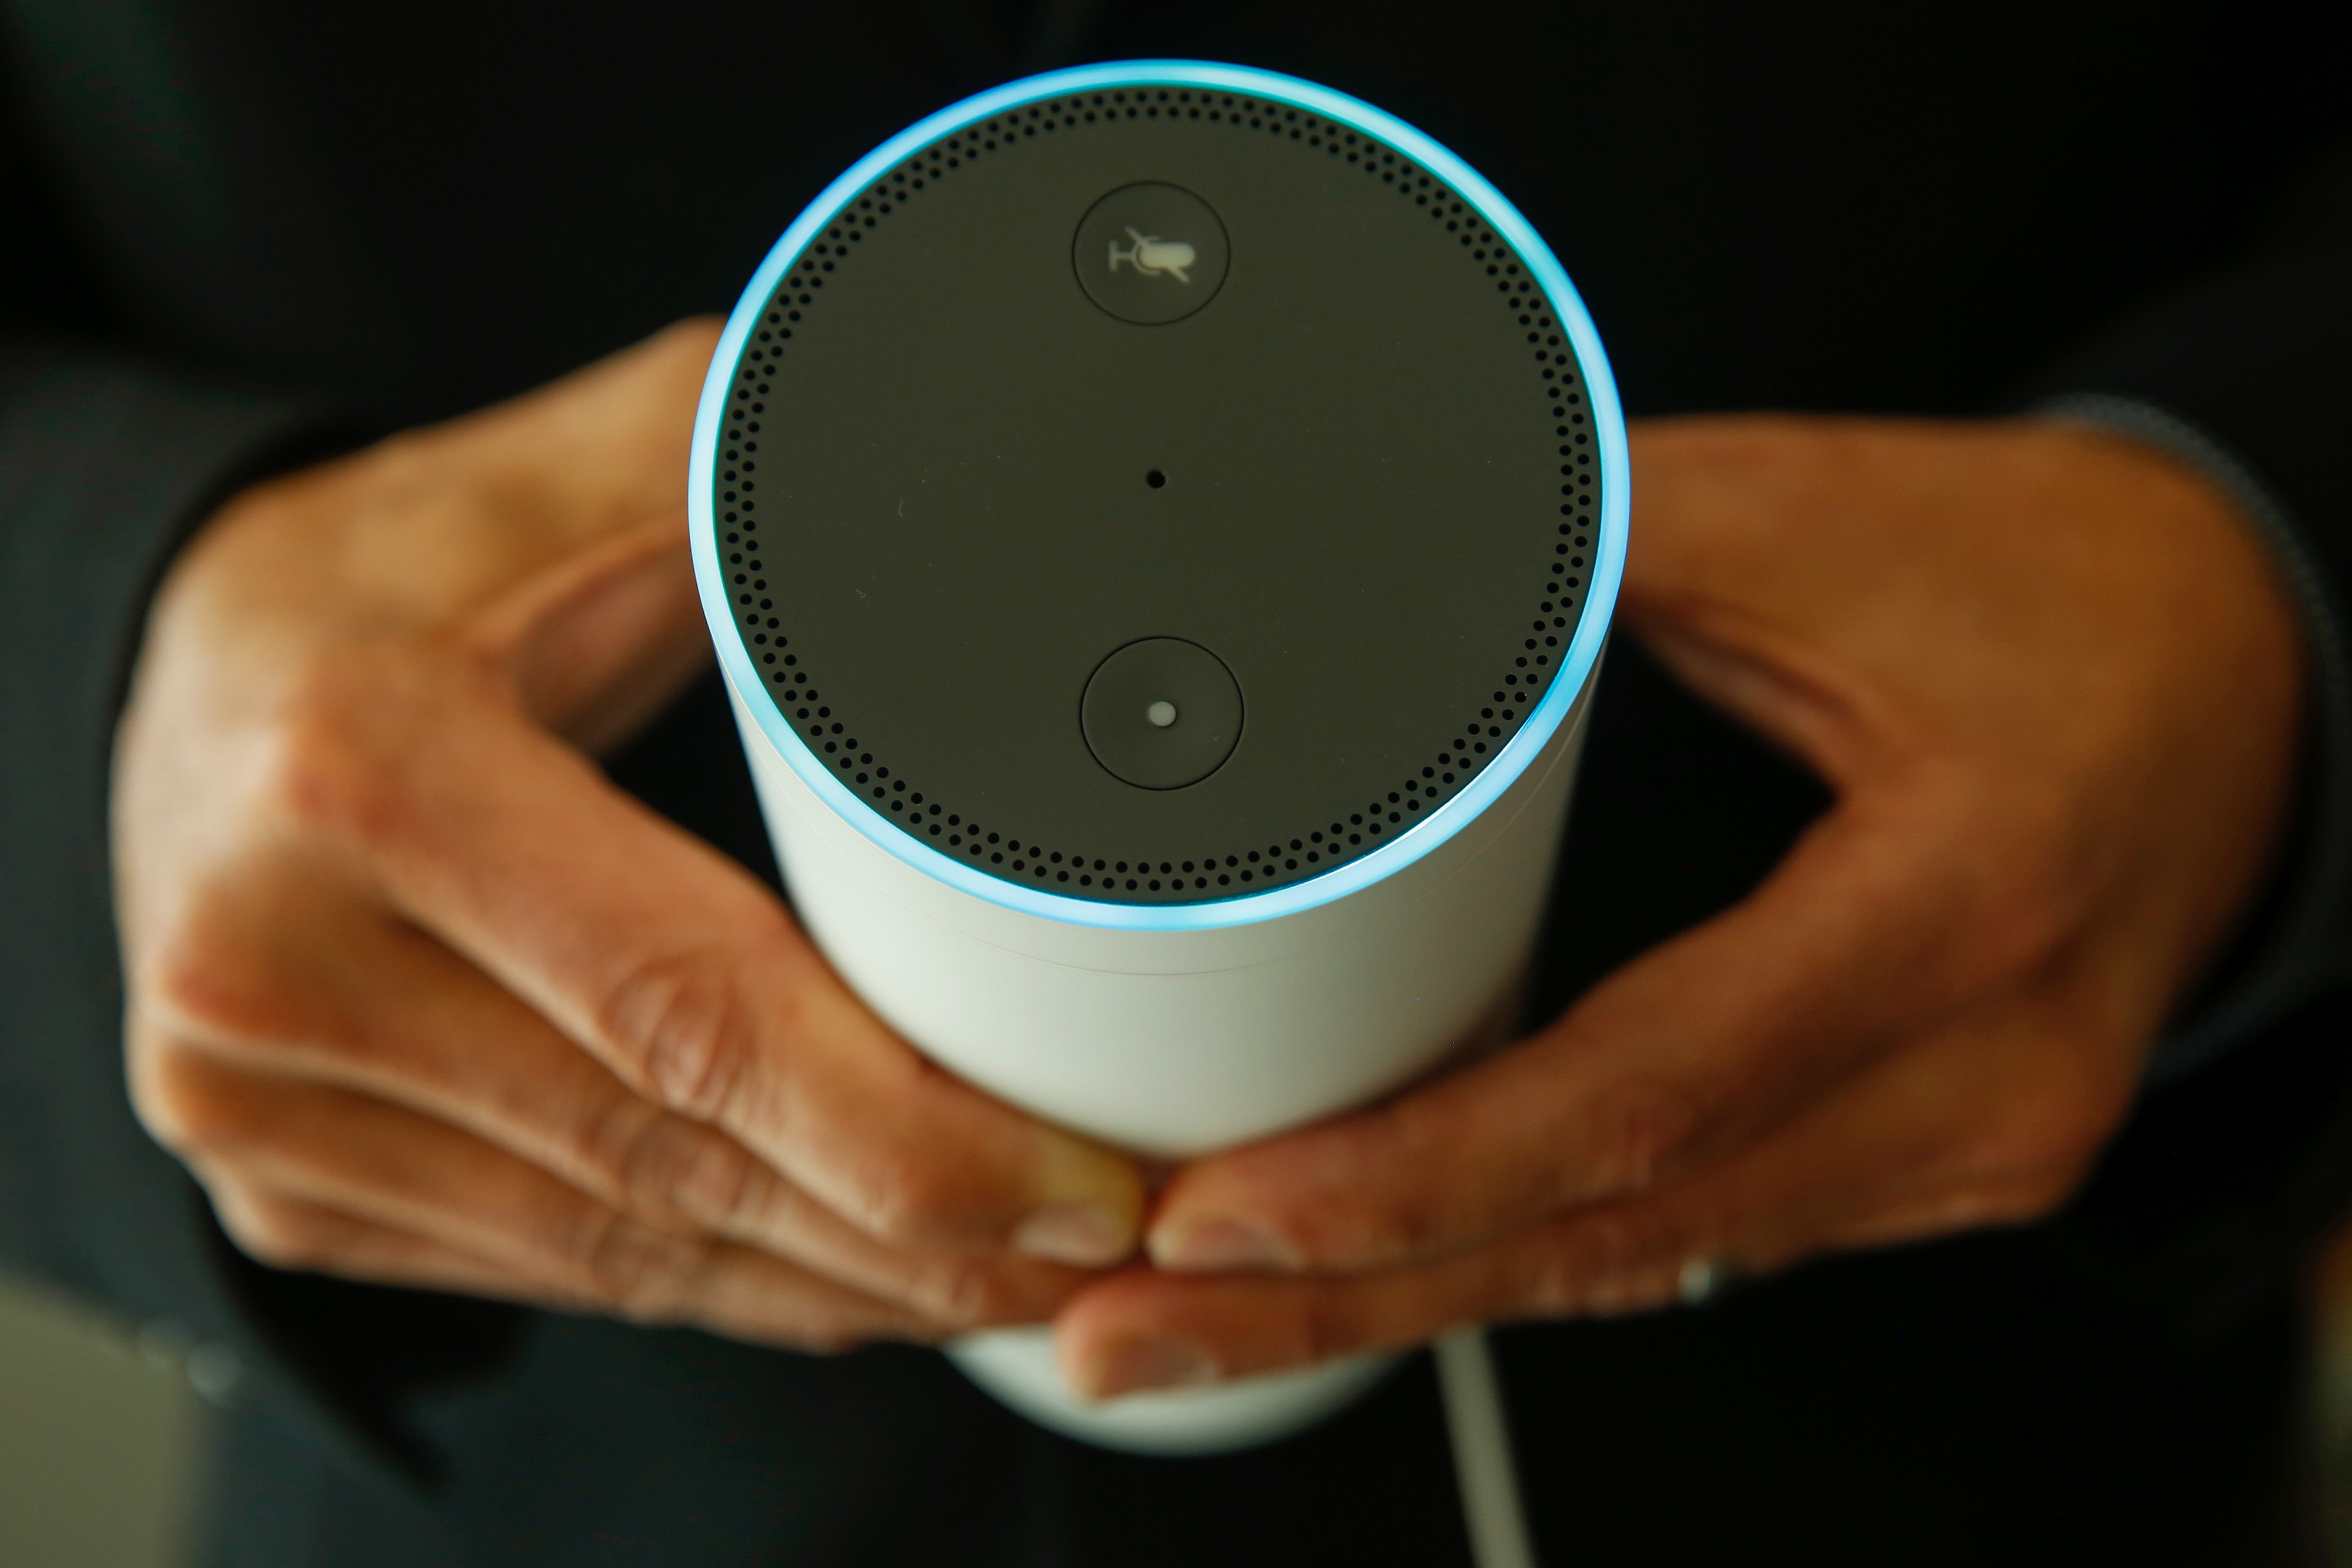 An attendee holds an Echo device during the U.K. launch event for the Amazon.com Inc. Echo voice-controlled home assistant speaker in this arranged photograph in London, U.K., on Wednesday, Sept. 14, 2016.